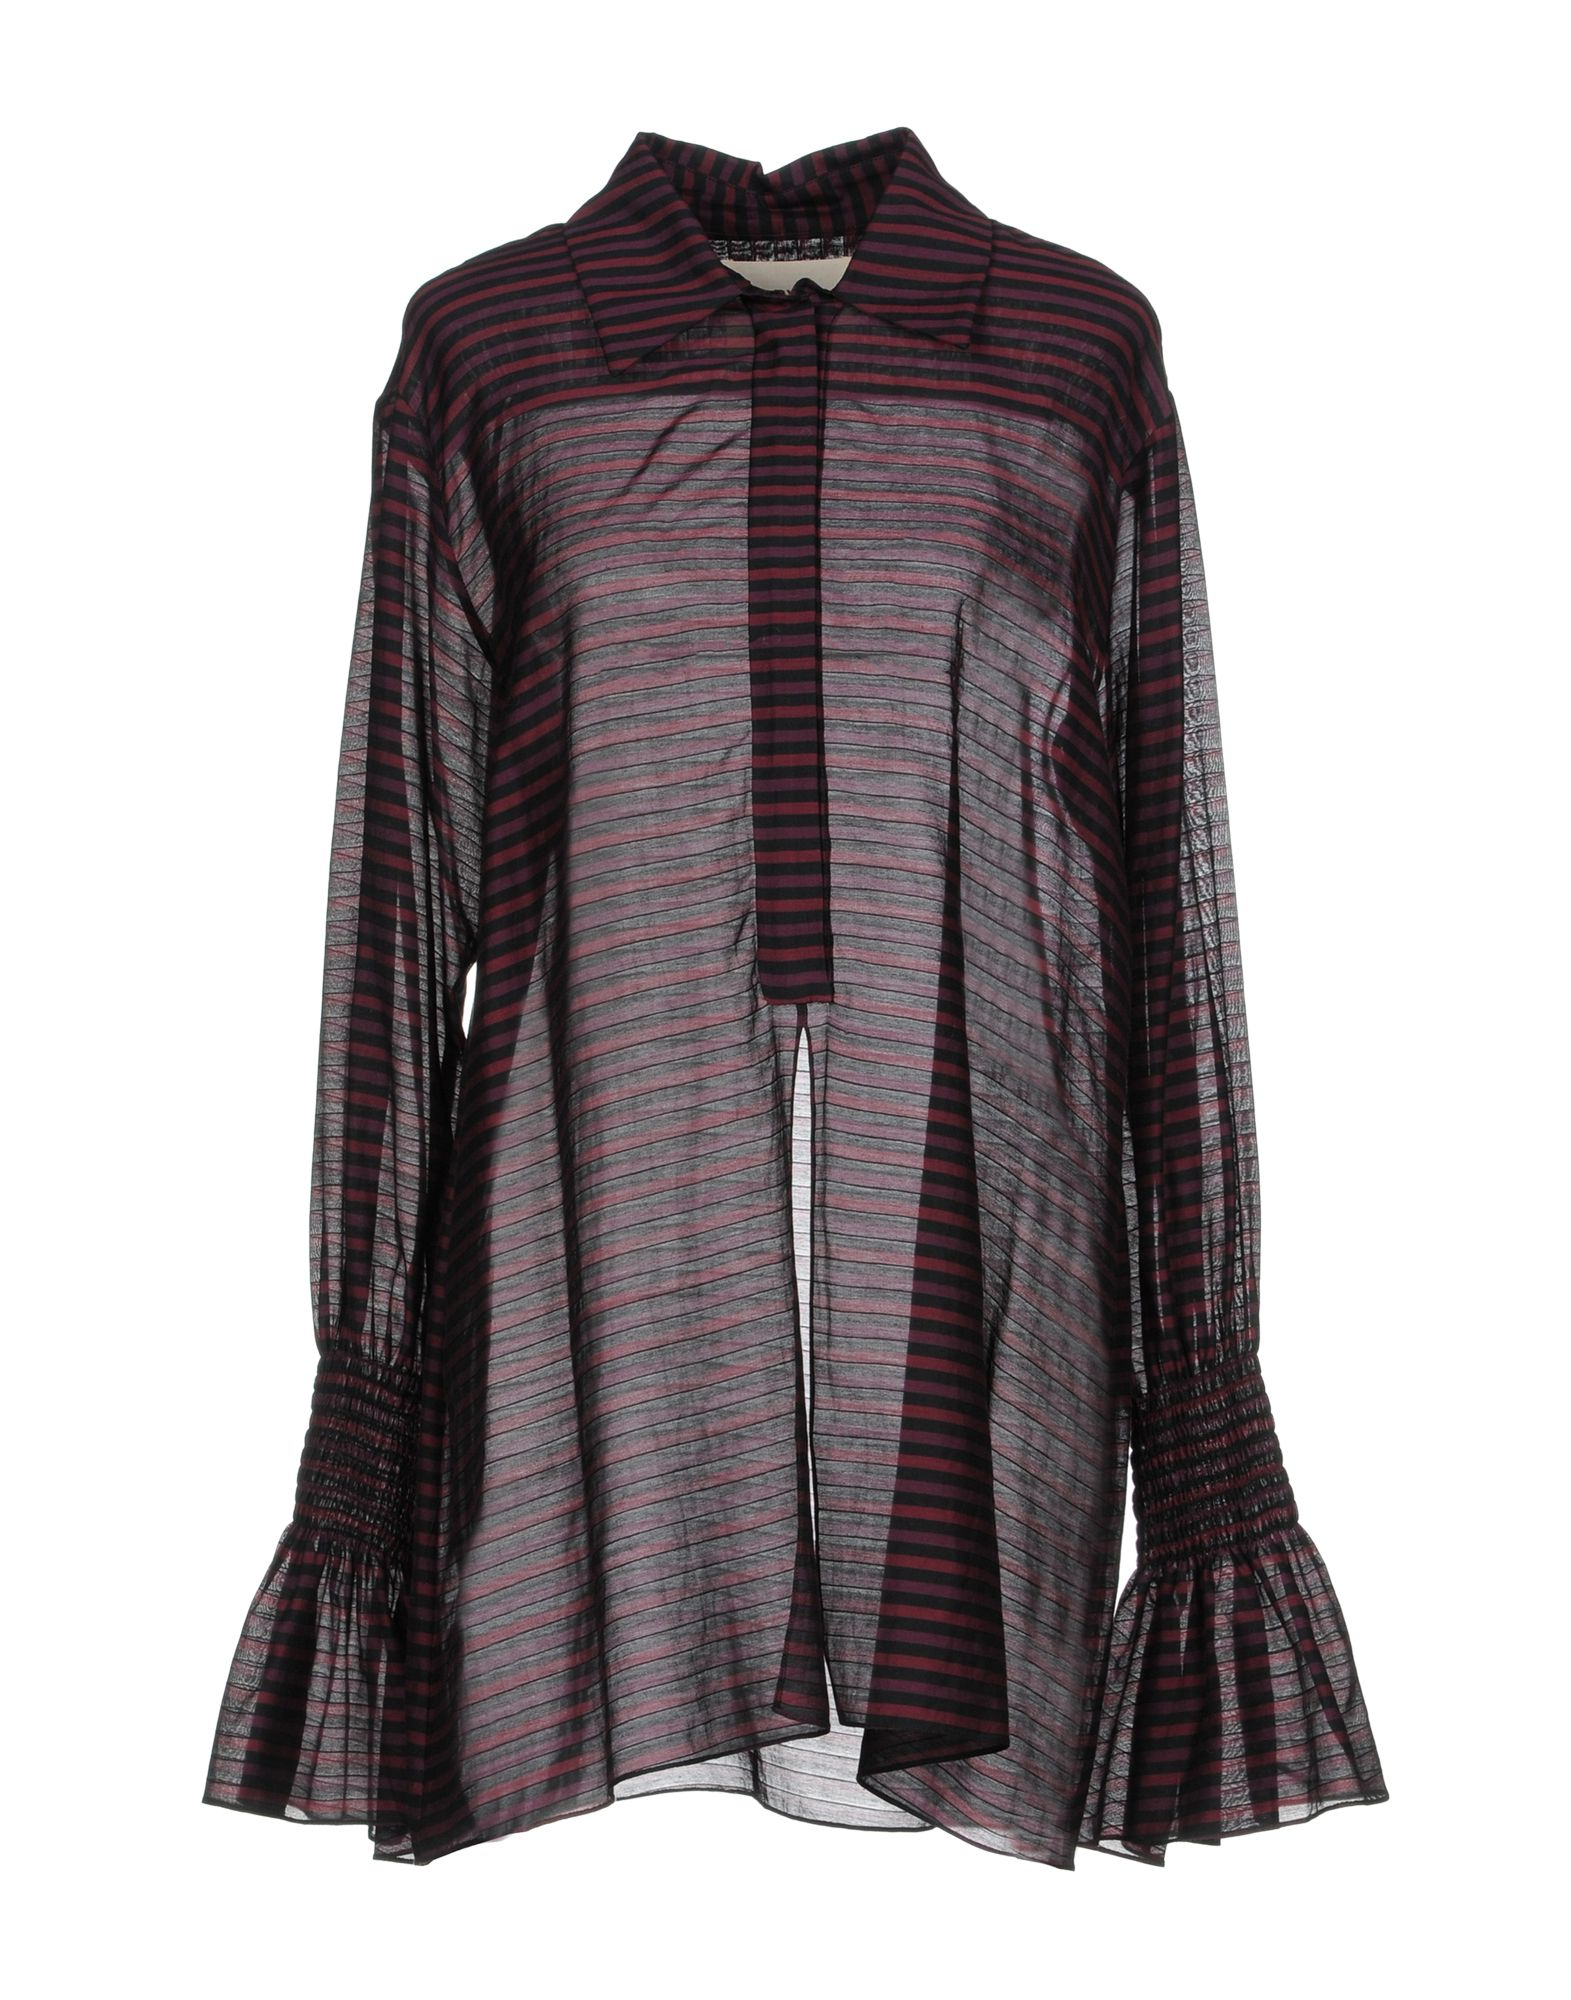 BY. BONNIE YOUNG Blouse in Deep Purple